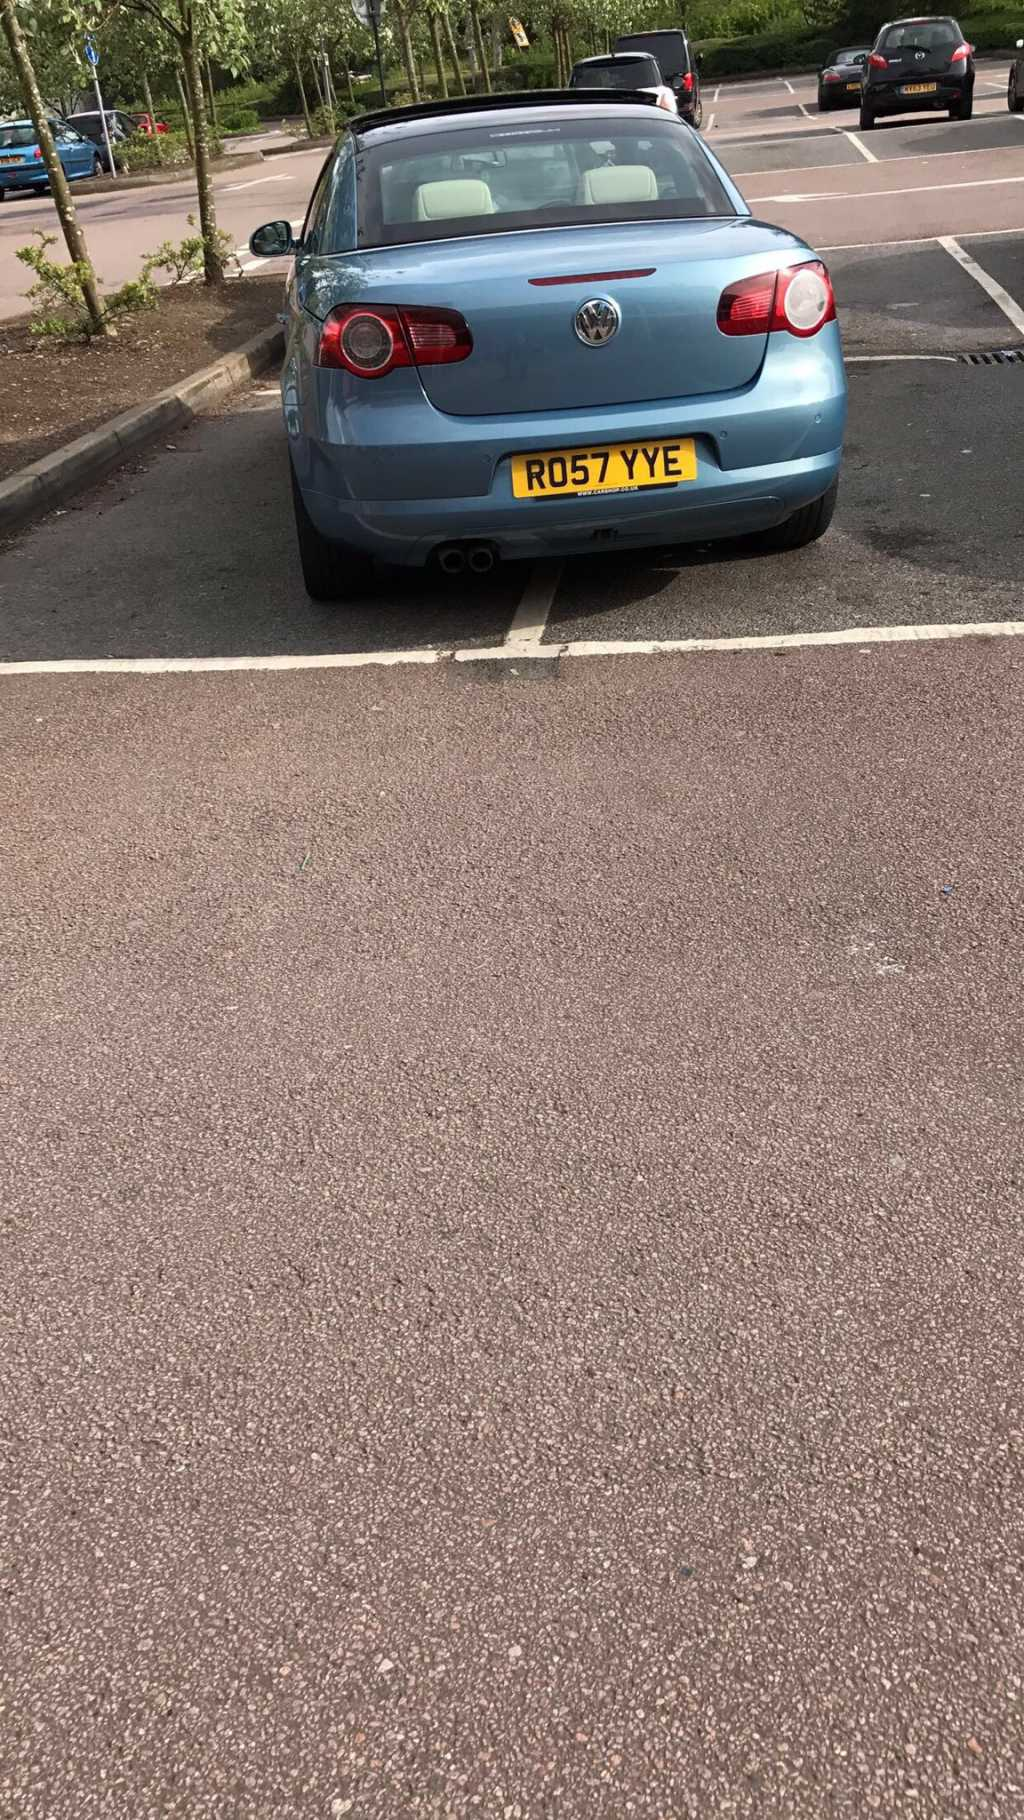 RO57 YYE is a crap parker